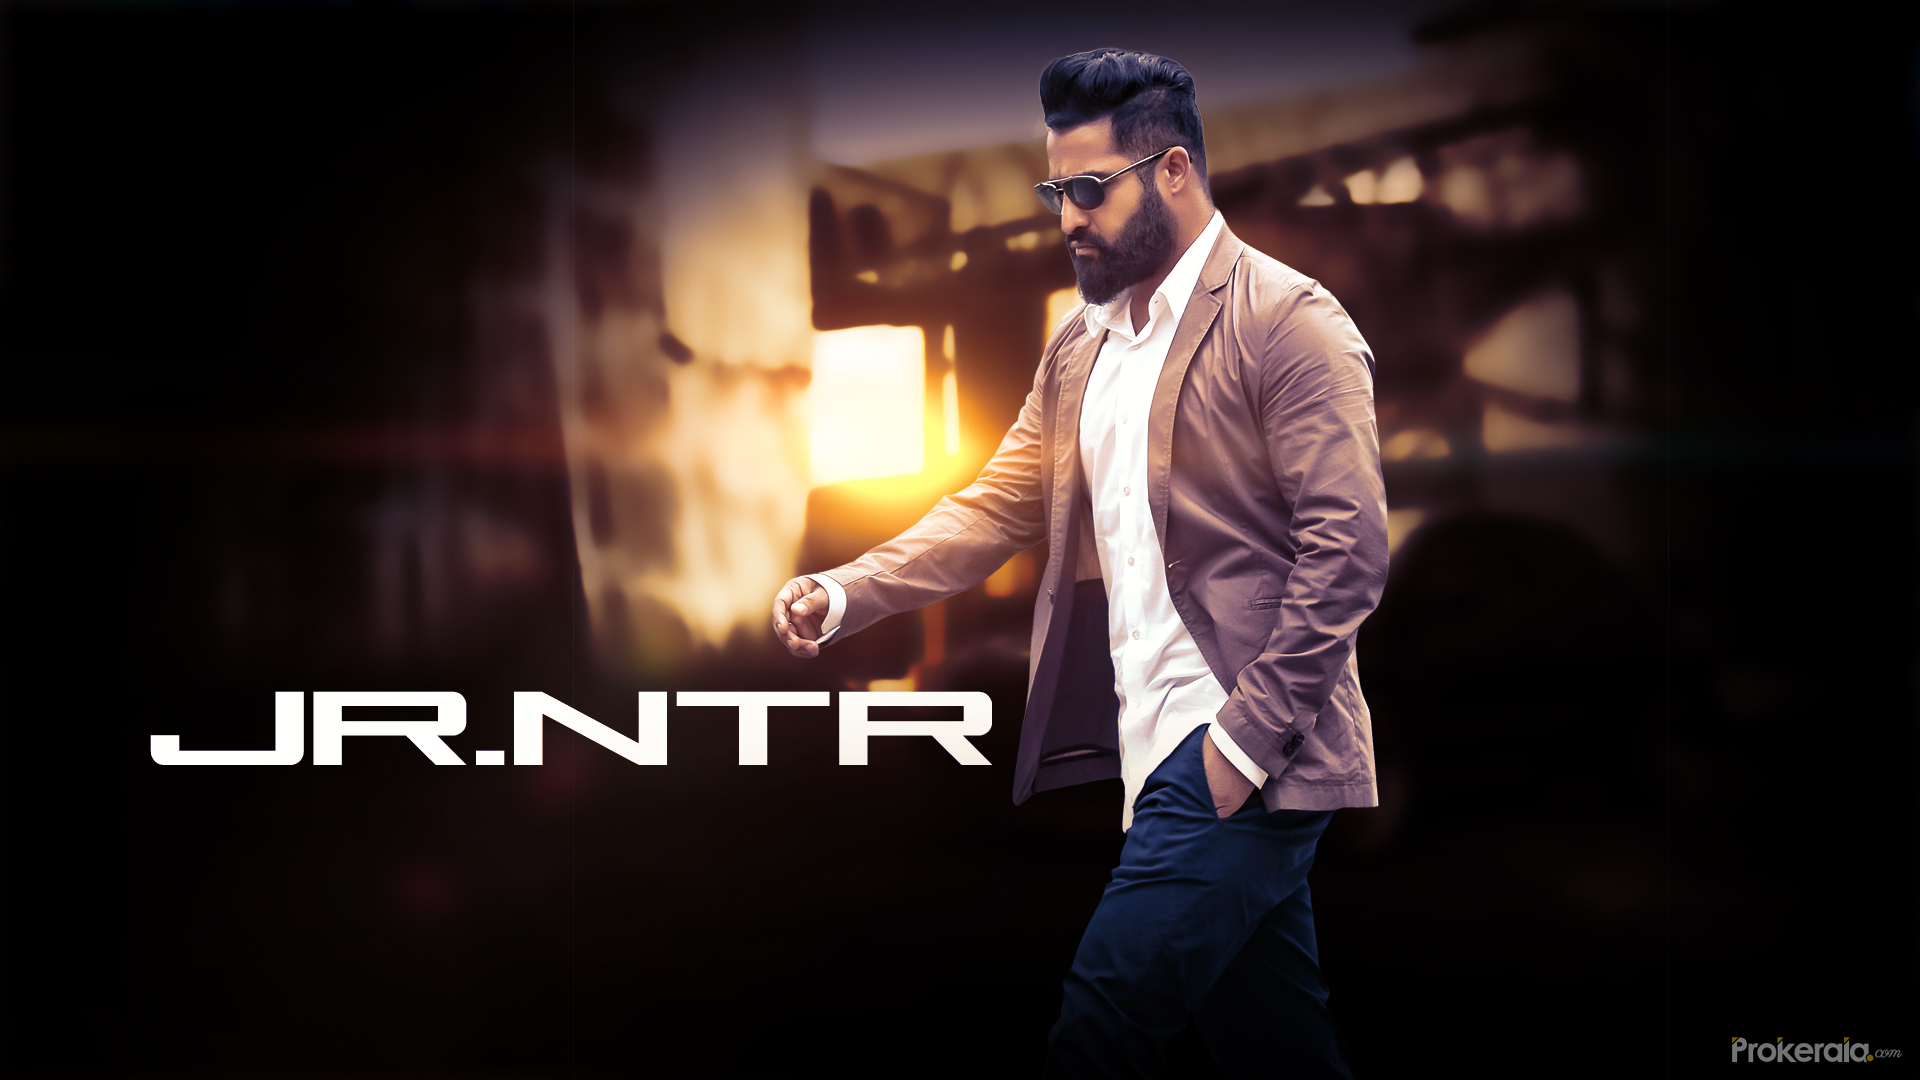 Jr ntr hd wallpaper